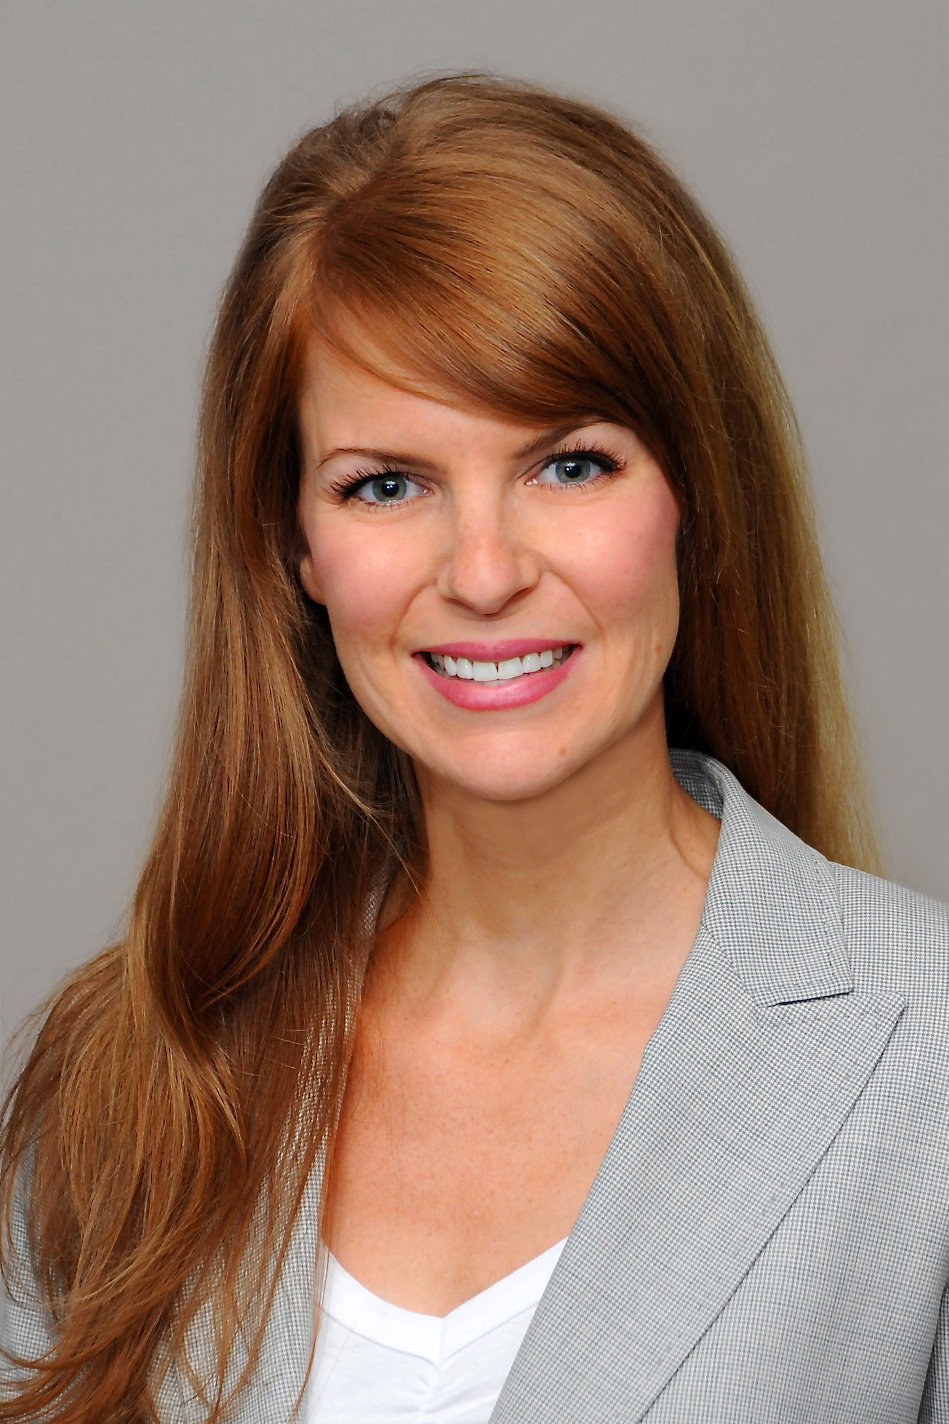 Shannon M. Hafner Board Member Turner Construction Co. Accounting Manager Message